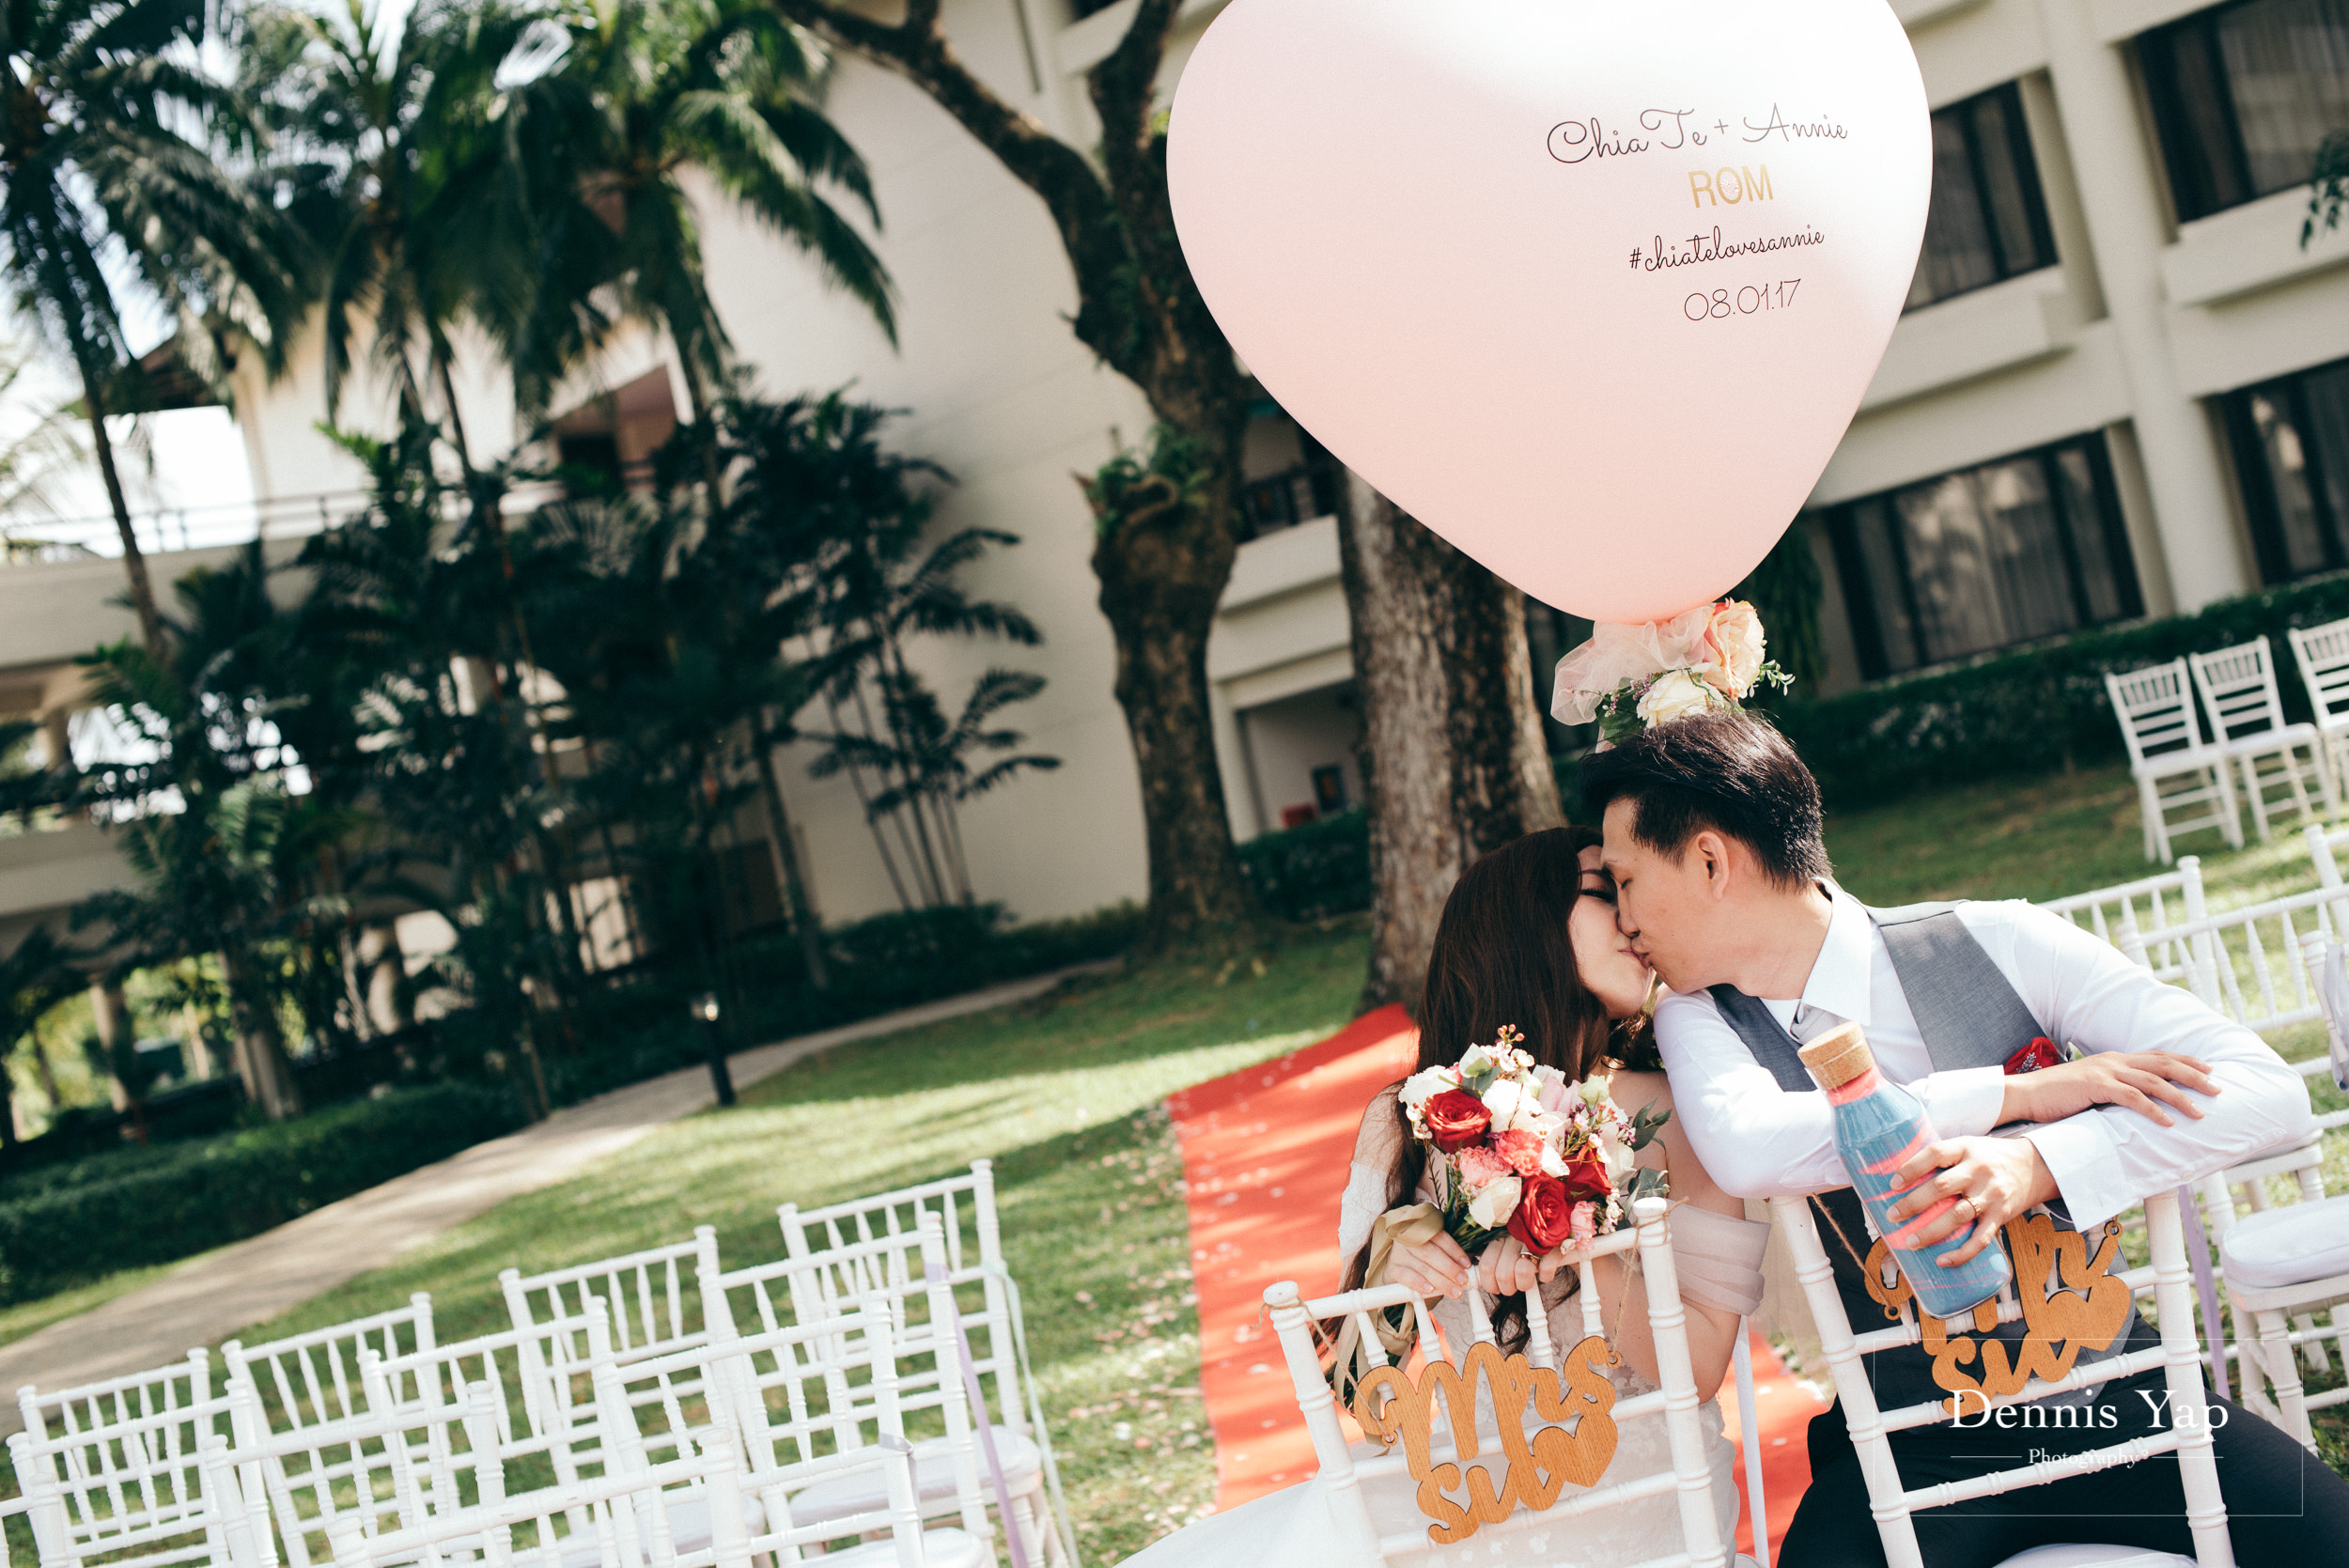 CT Annie garden wedding saujana subang jaya dennis yap photography IT malaysia top photographer-21.jpg